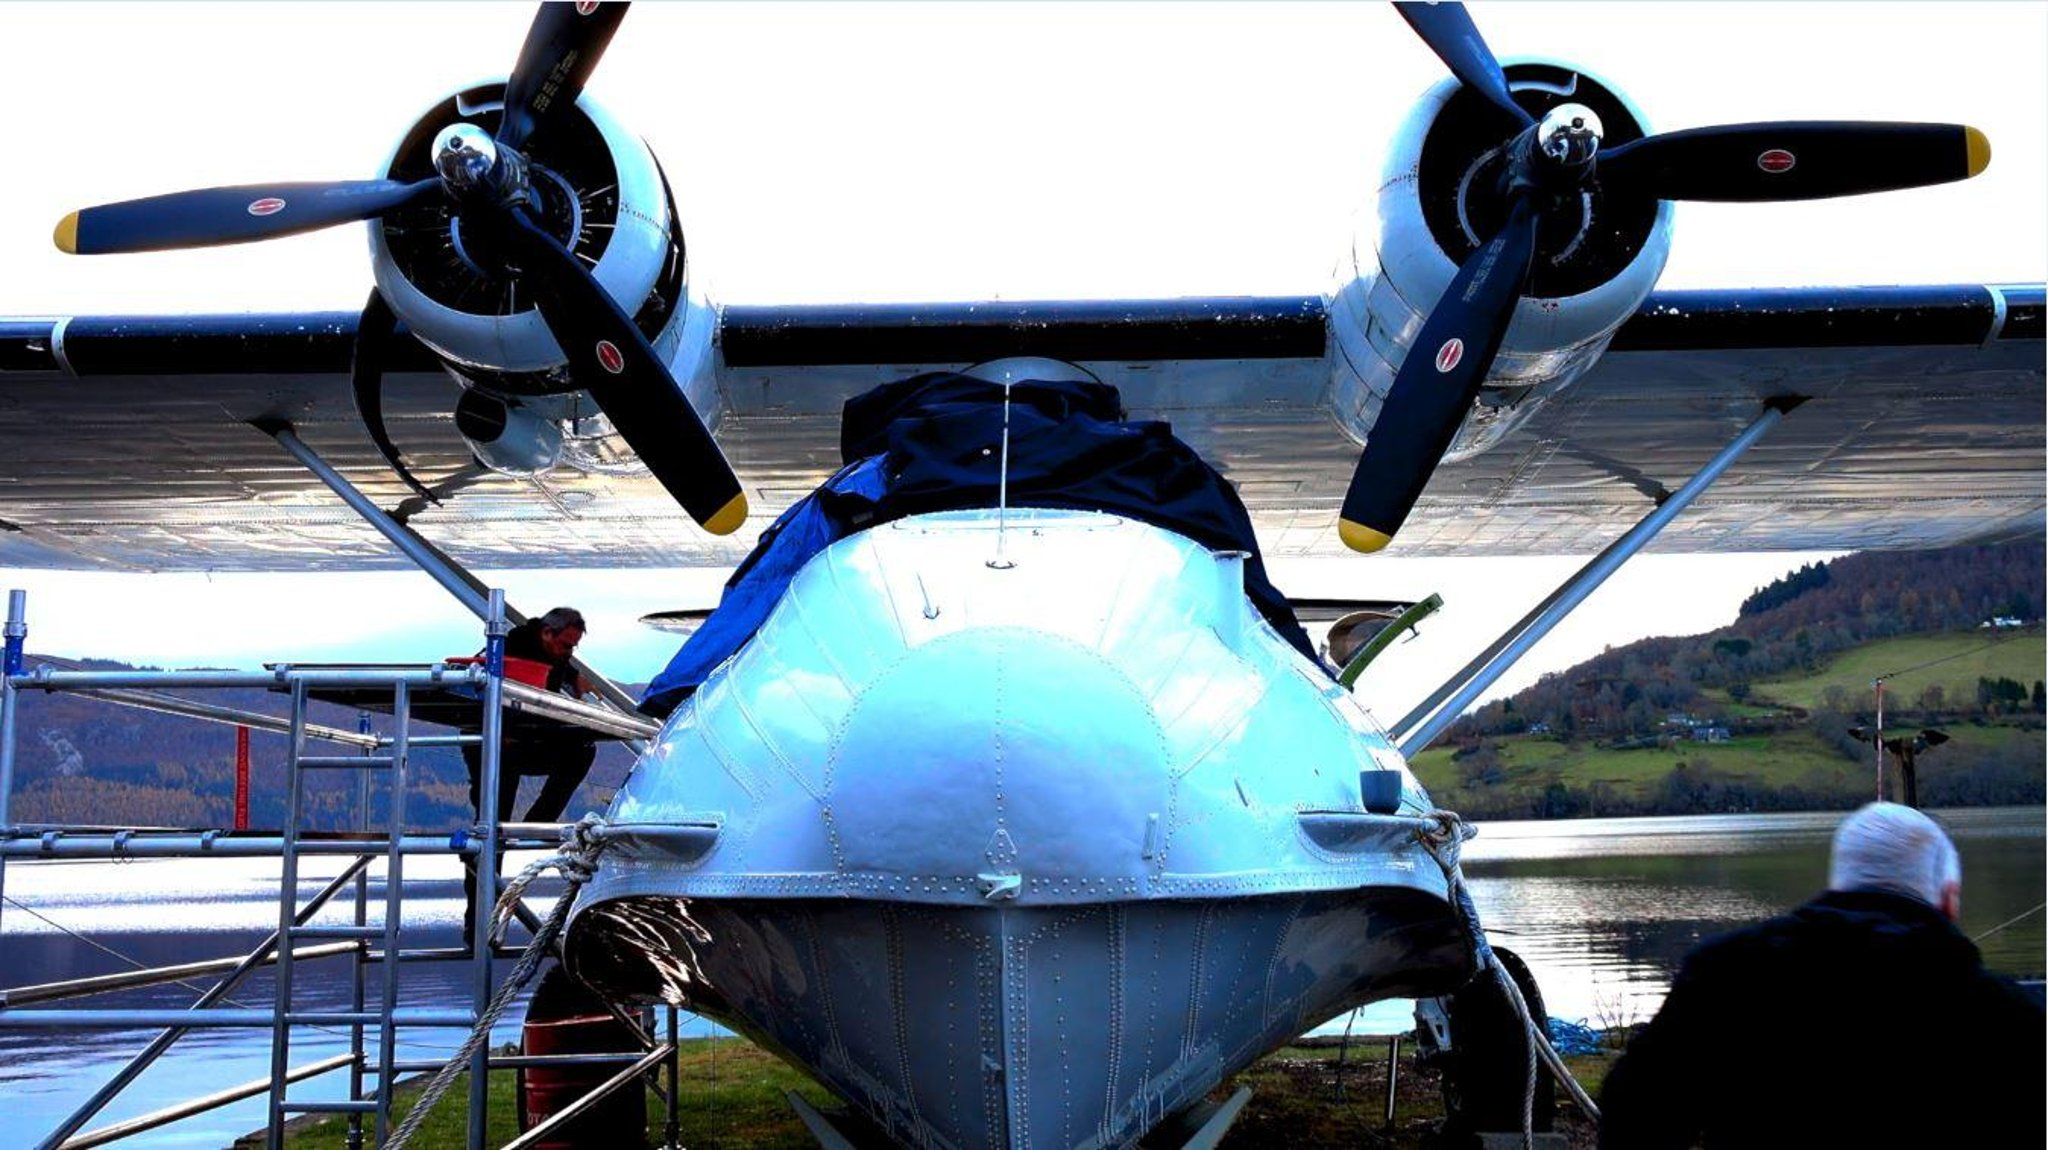 Documentary captures dramatic rescue of rare World War II seaplane on Loch Ness